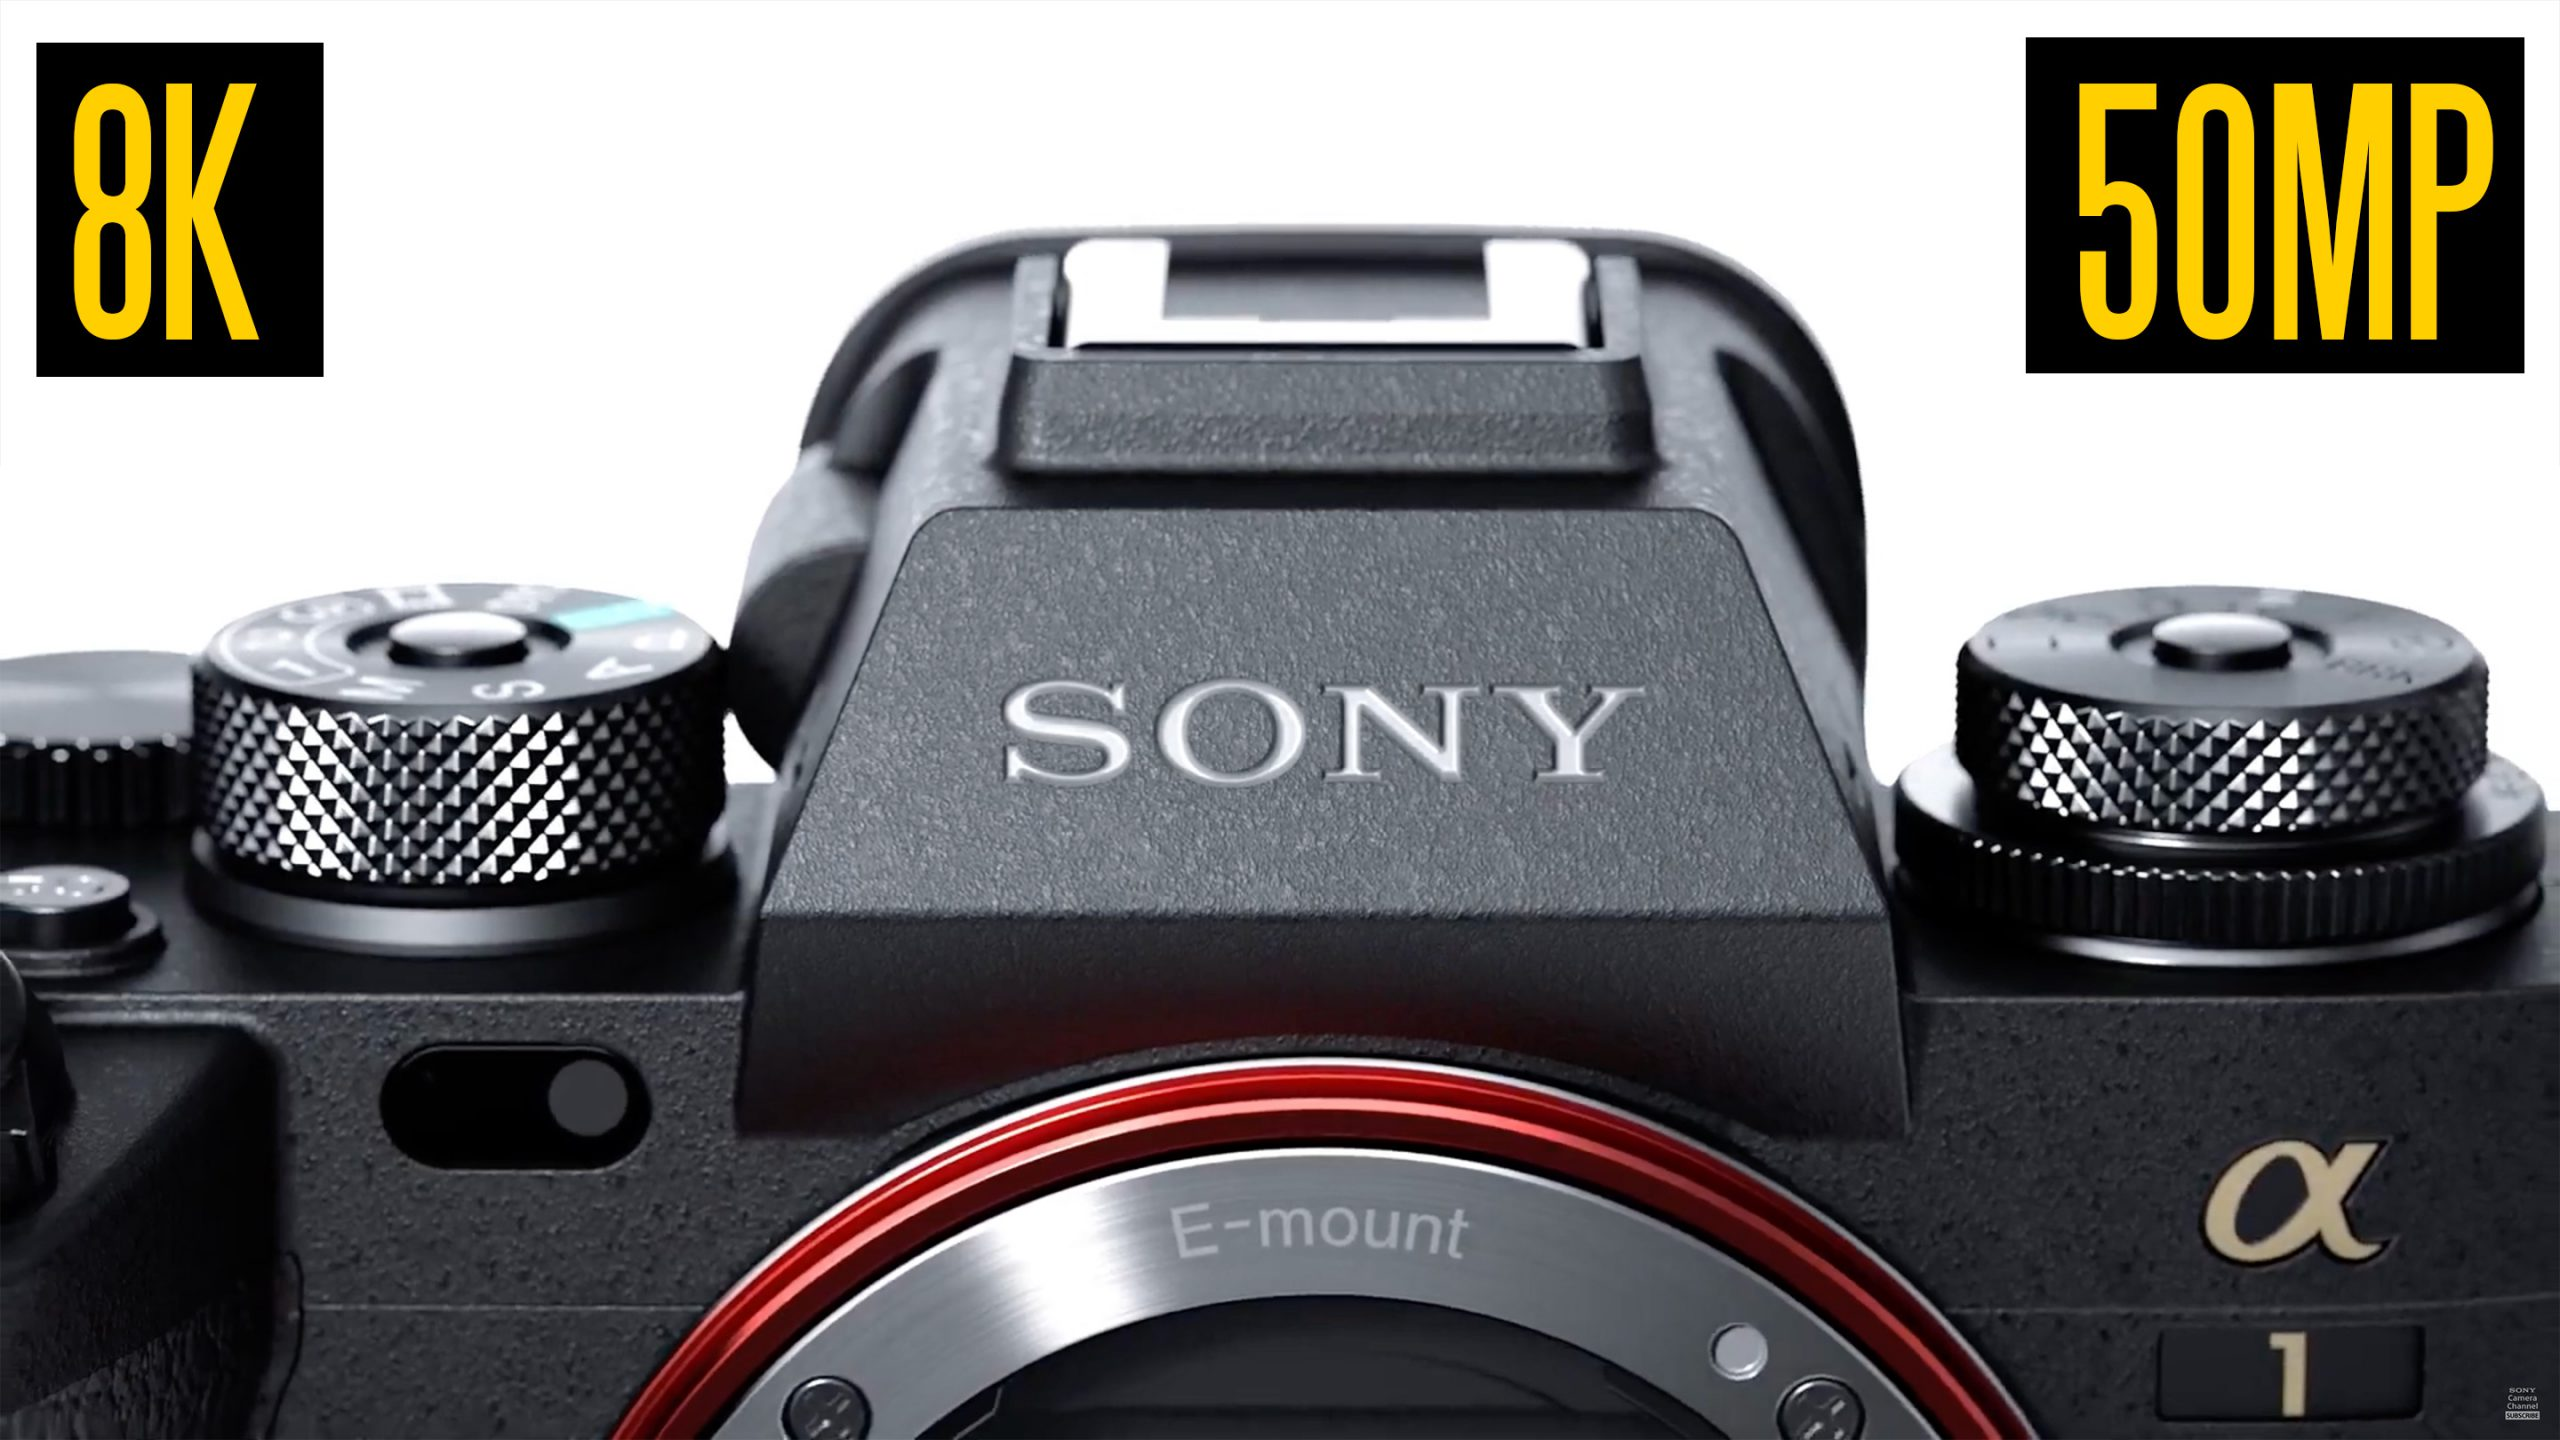 Sony Alpha 1 announced - 8K, 50MP (Canon EOS R5 competitor, but $6500) -  EOSHD.com - Filmmaking Gear and Camera Reviews